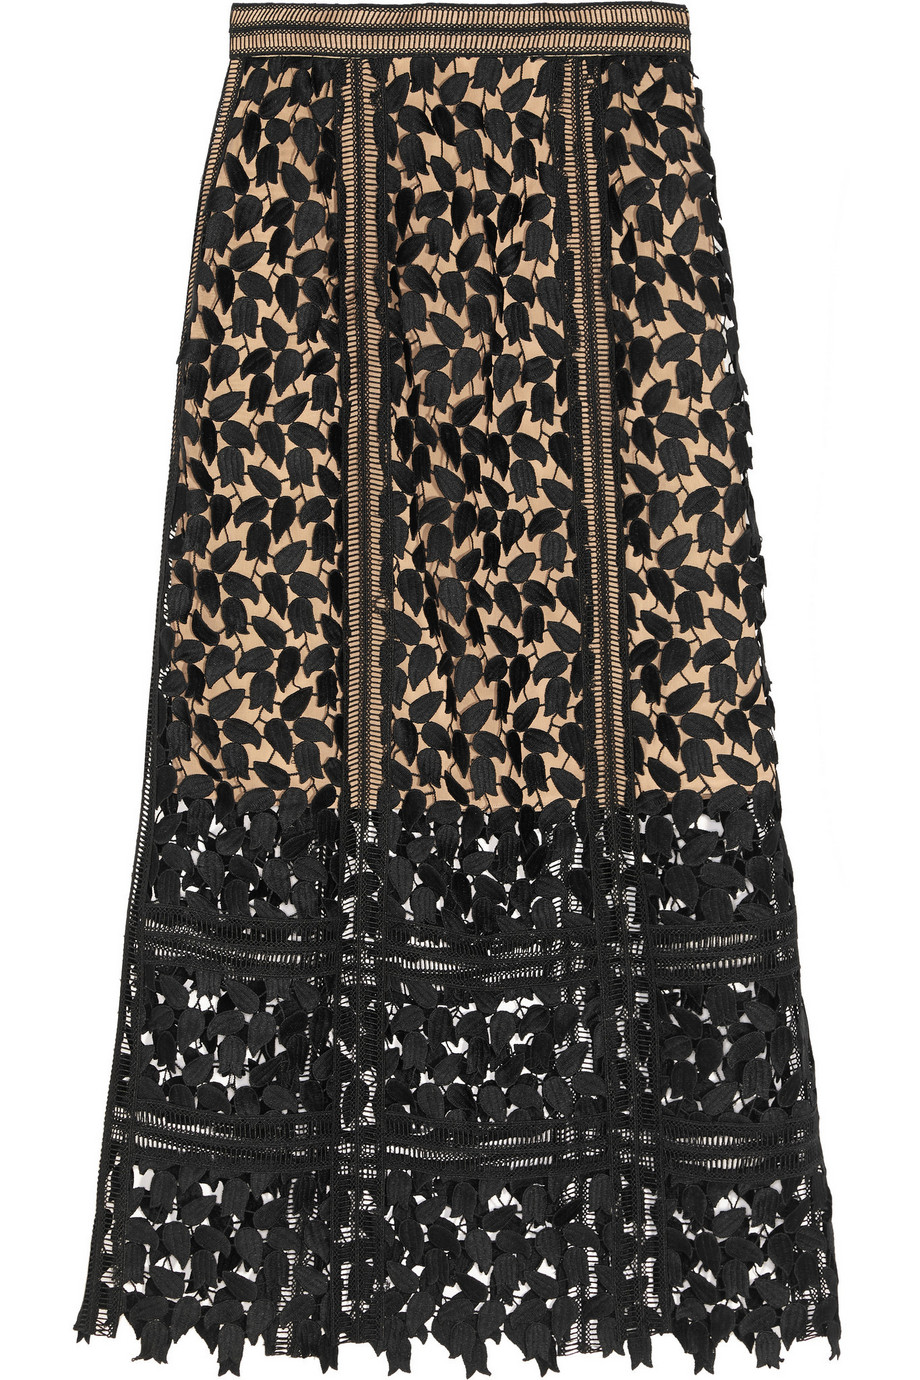 Self-Portrait Arabella Guipure Lace Midi Skirt, Black, Women's, Size: 6